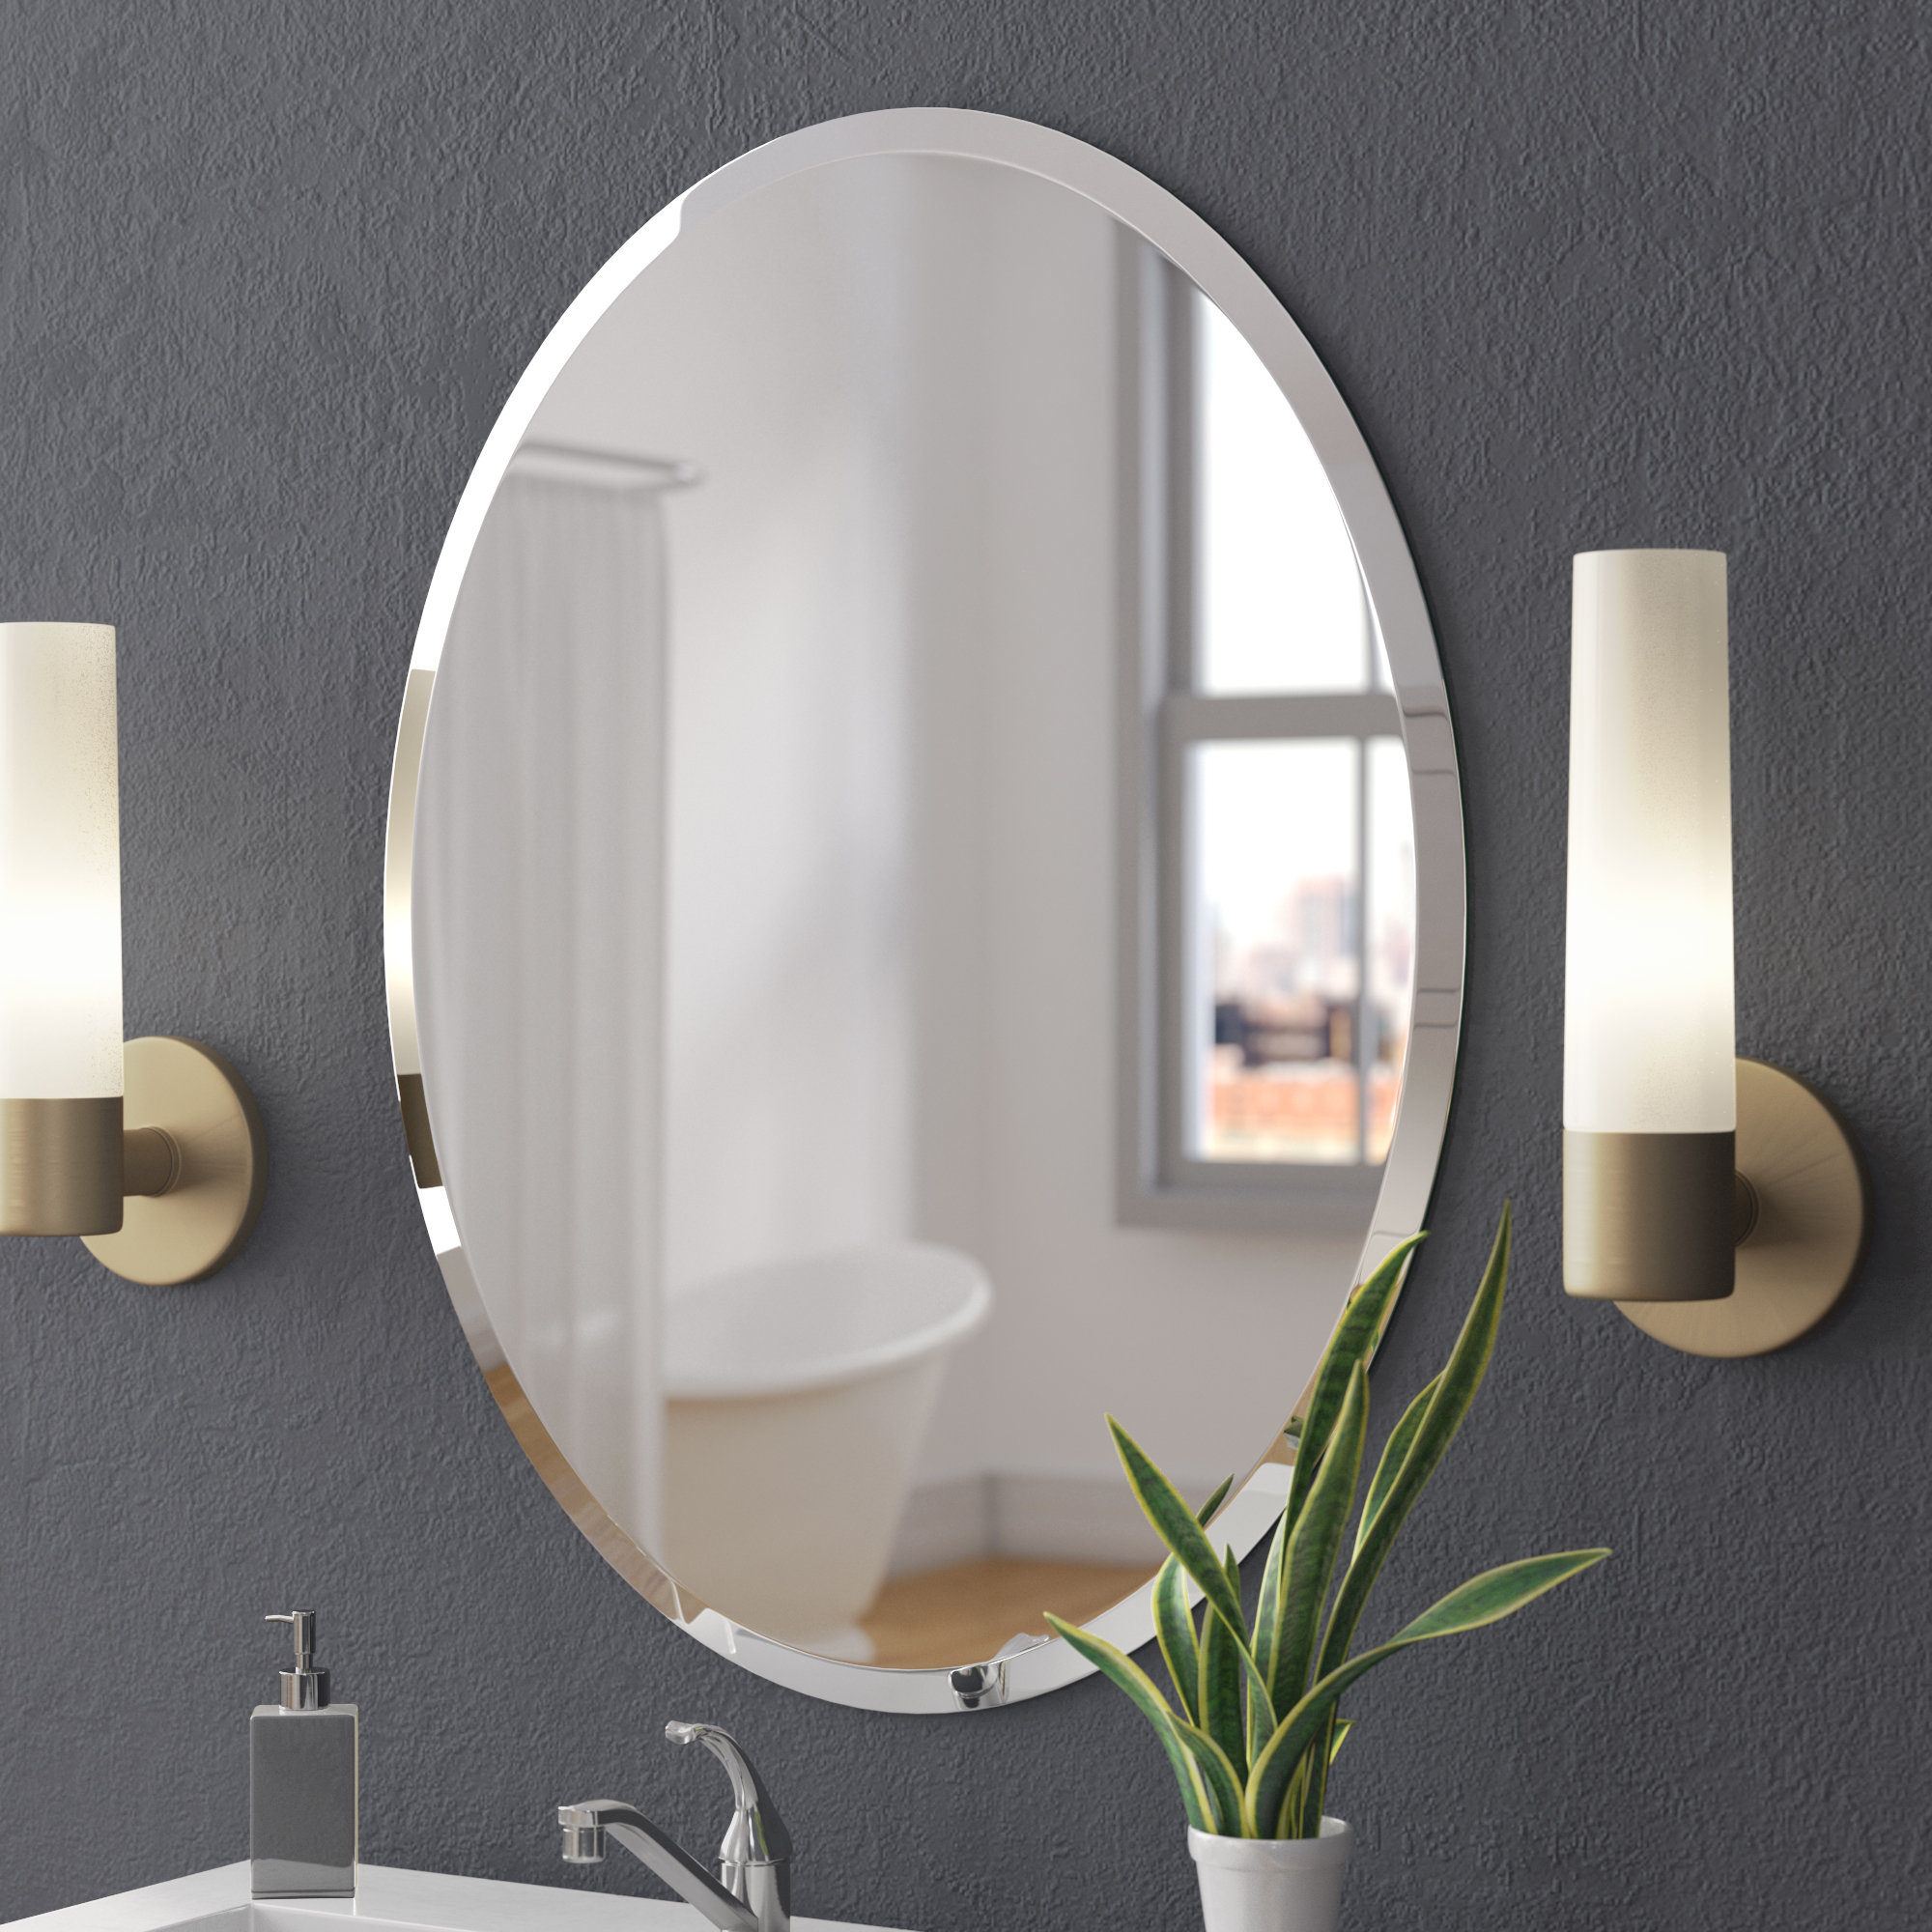 Stylish Wall Mirrors Intended For 2019 Callison Oval Bevel Frameless Wall Mirror (Gallery 10 of 20)